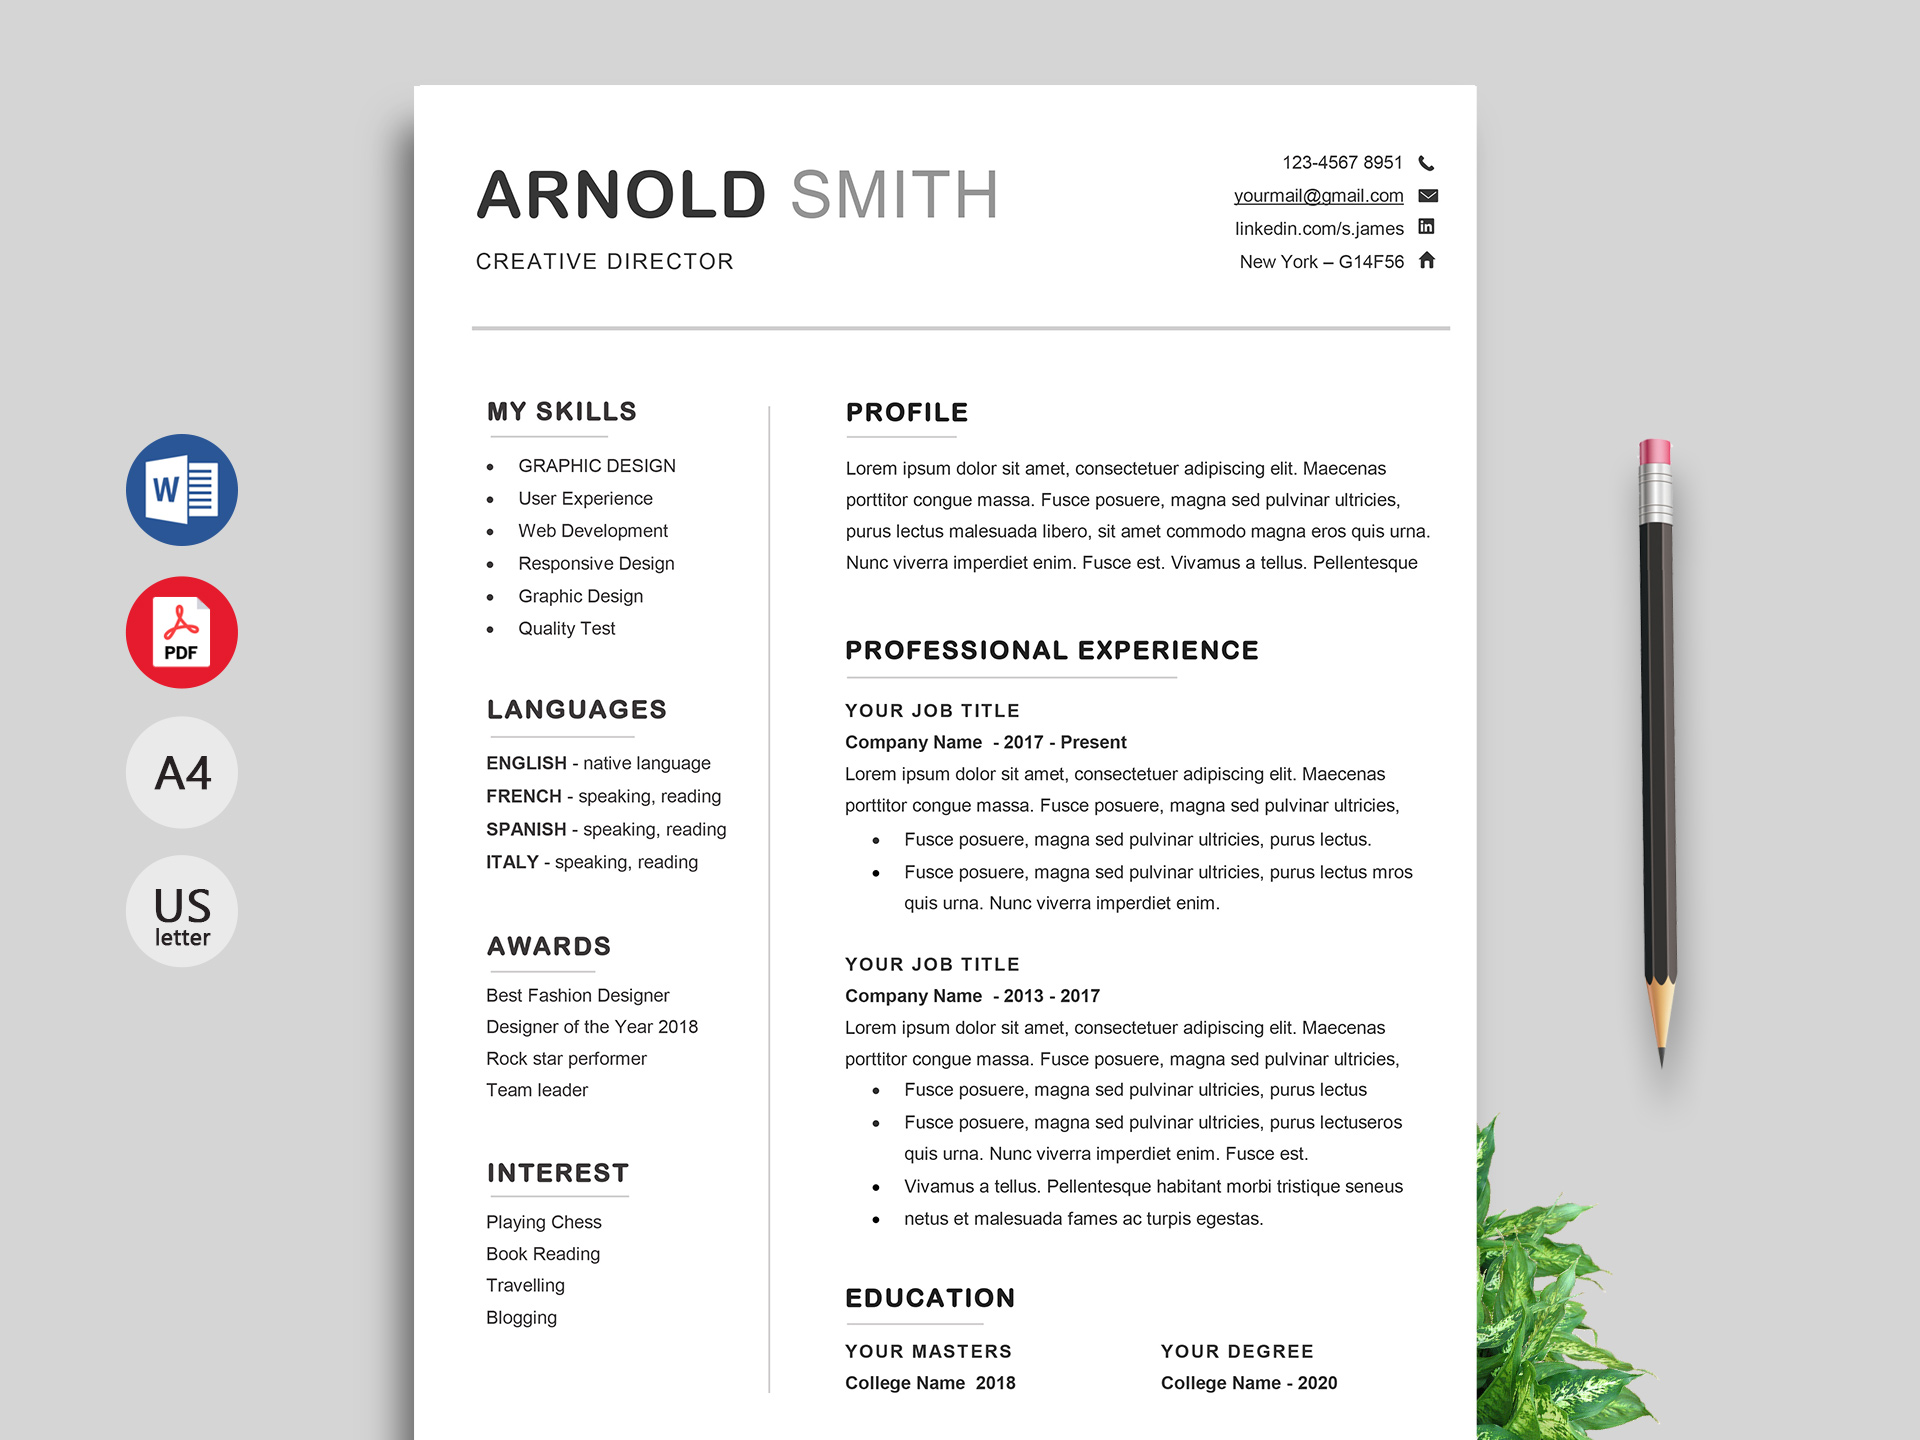 resume pdfesume template free word basic powerpoint image inspirations foundation simple Resume Simple Resume Template Free Download Word